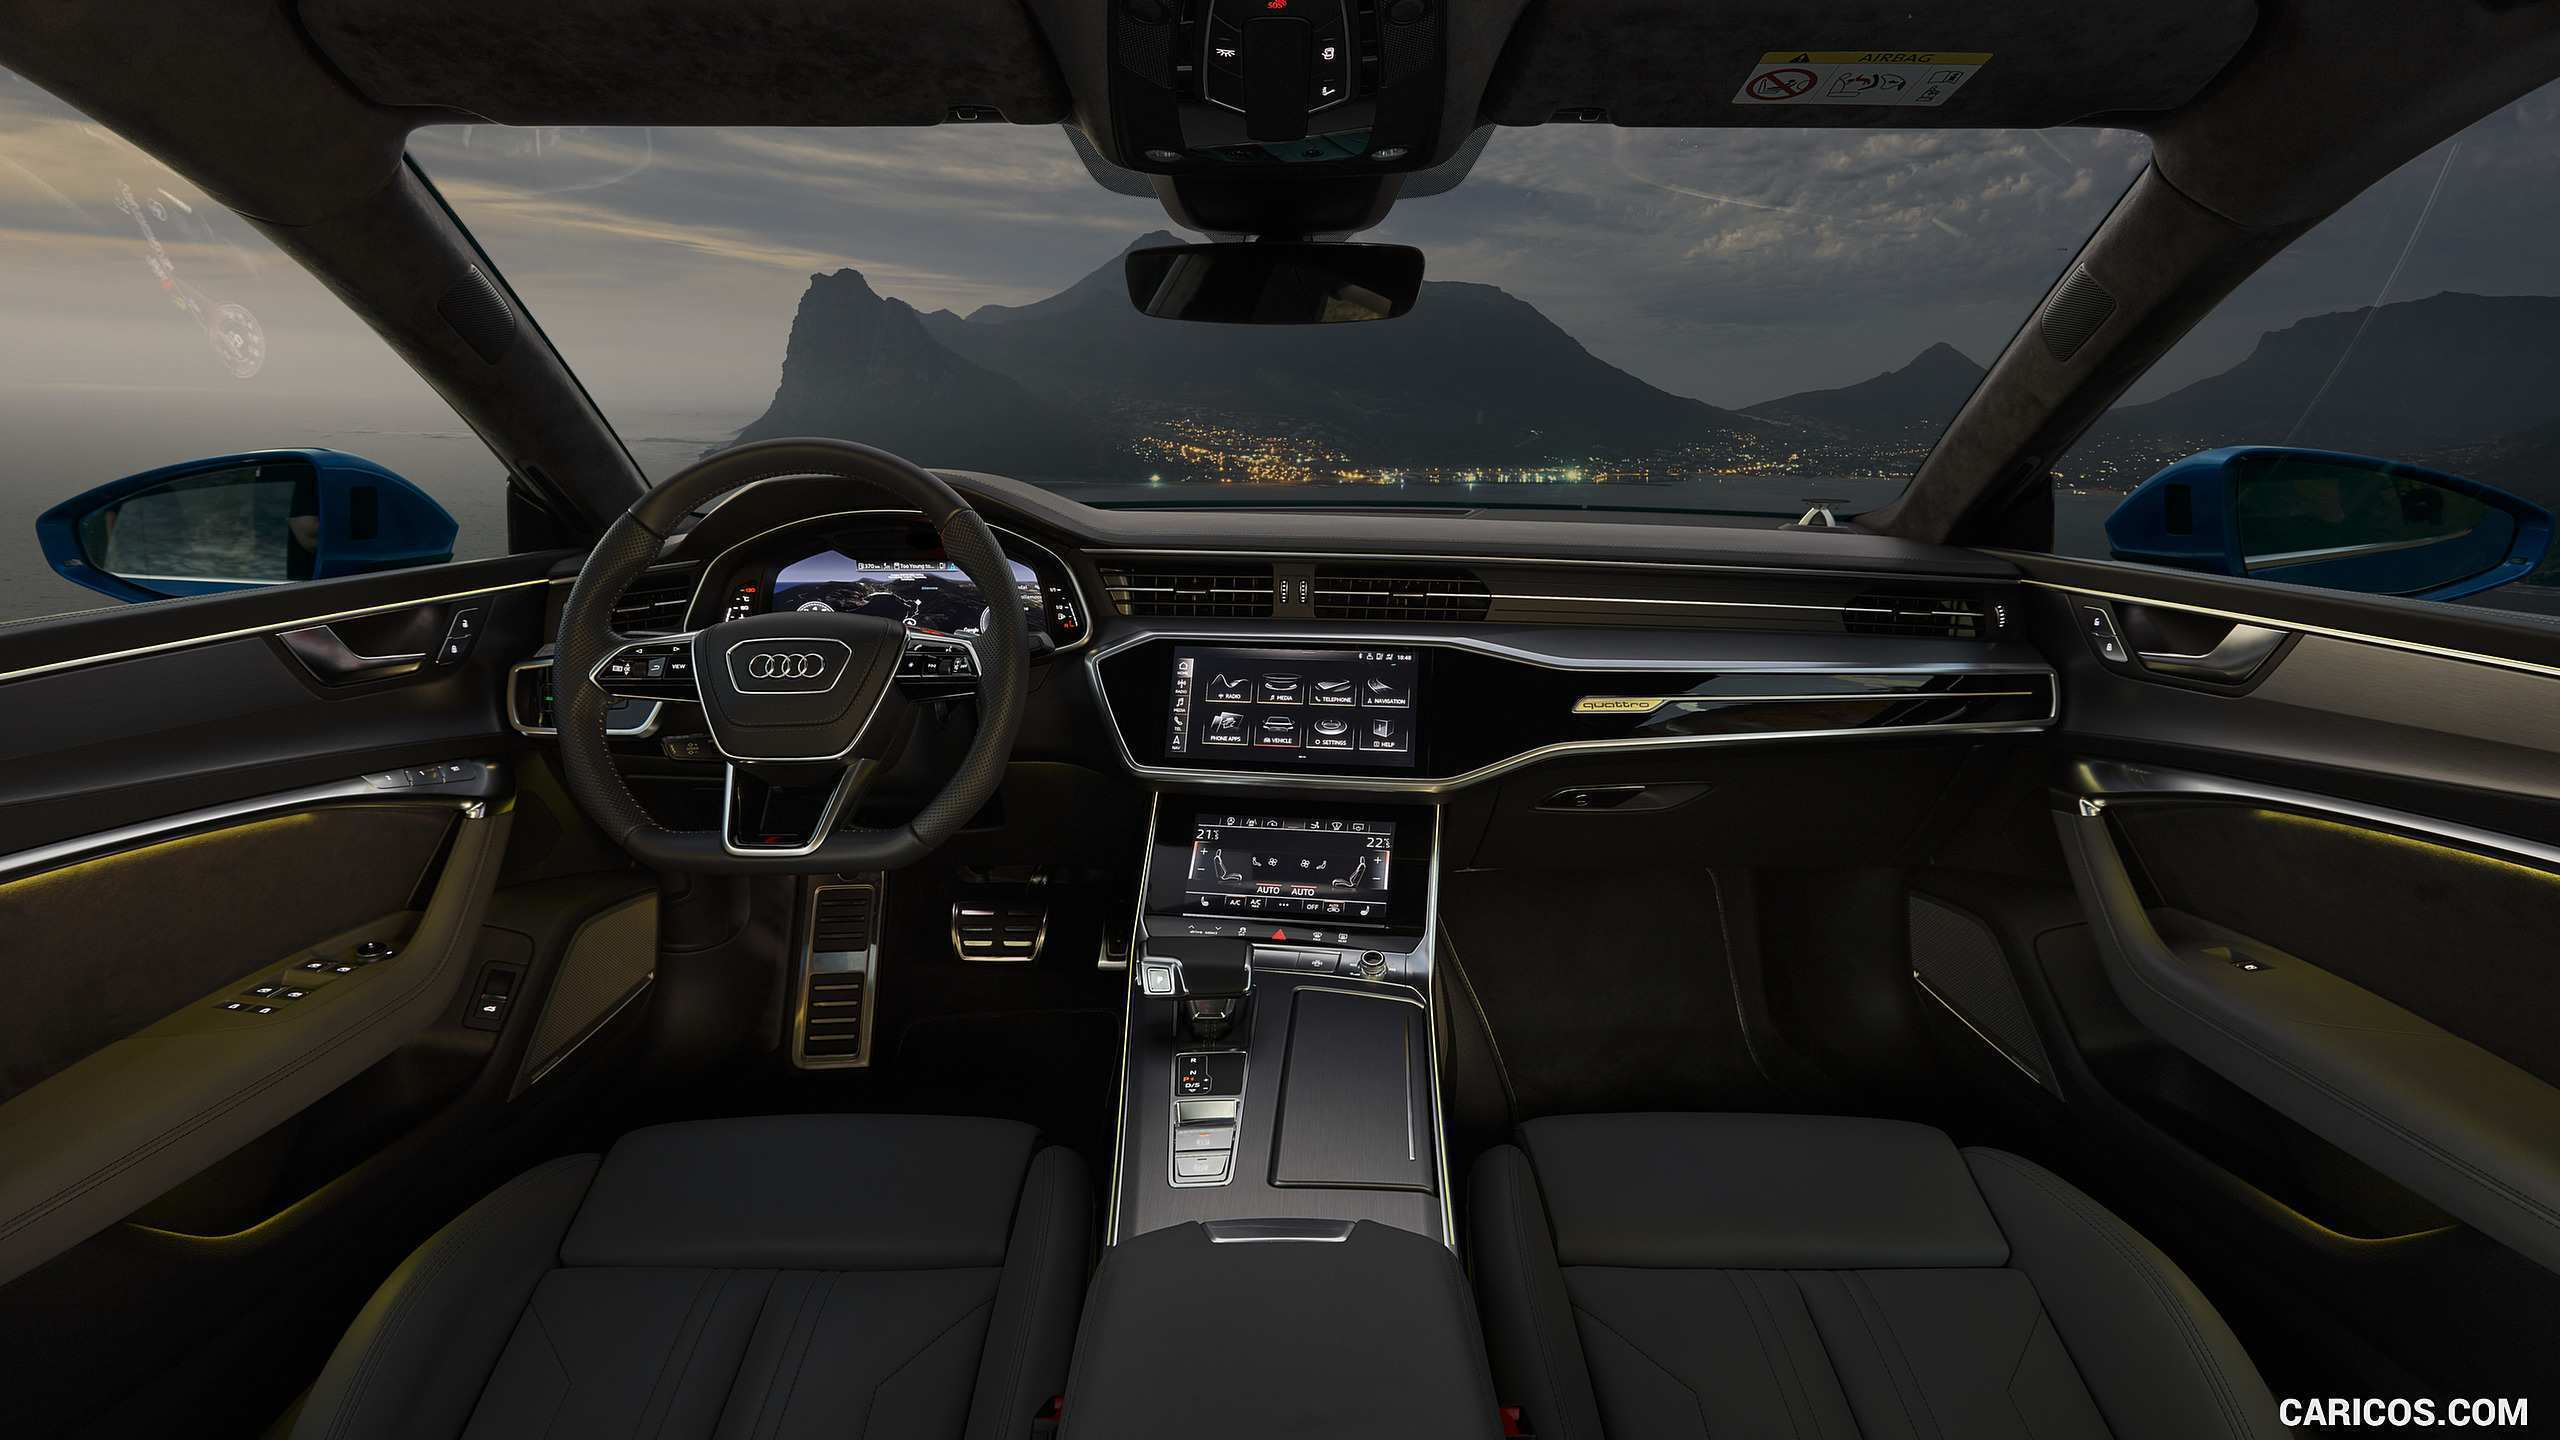 74 Gallery of 2019 Audi A7 Interior Redesign and Concept with 2019 Audi A7 Interior